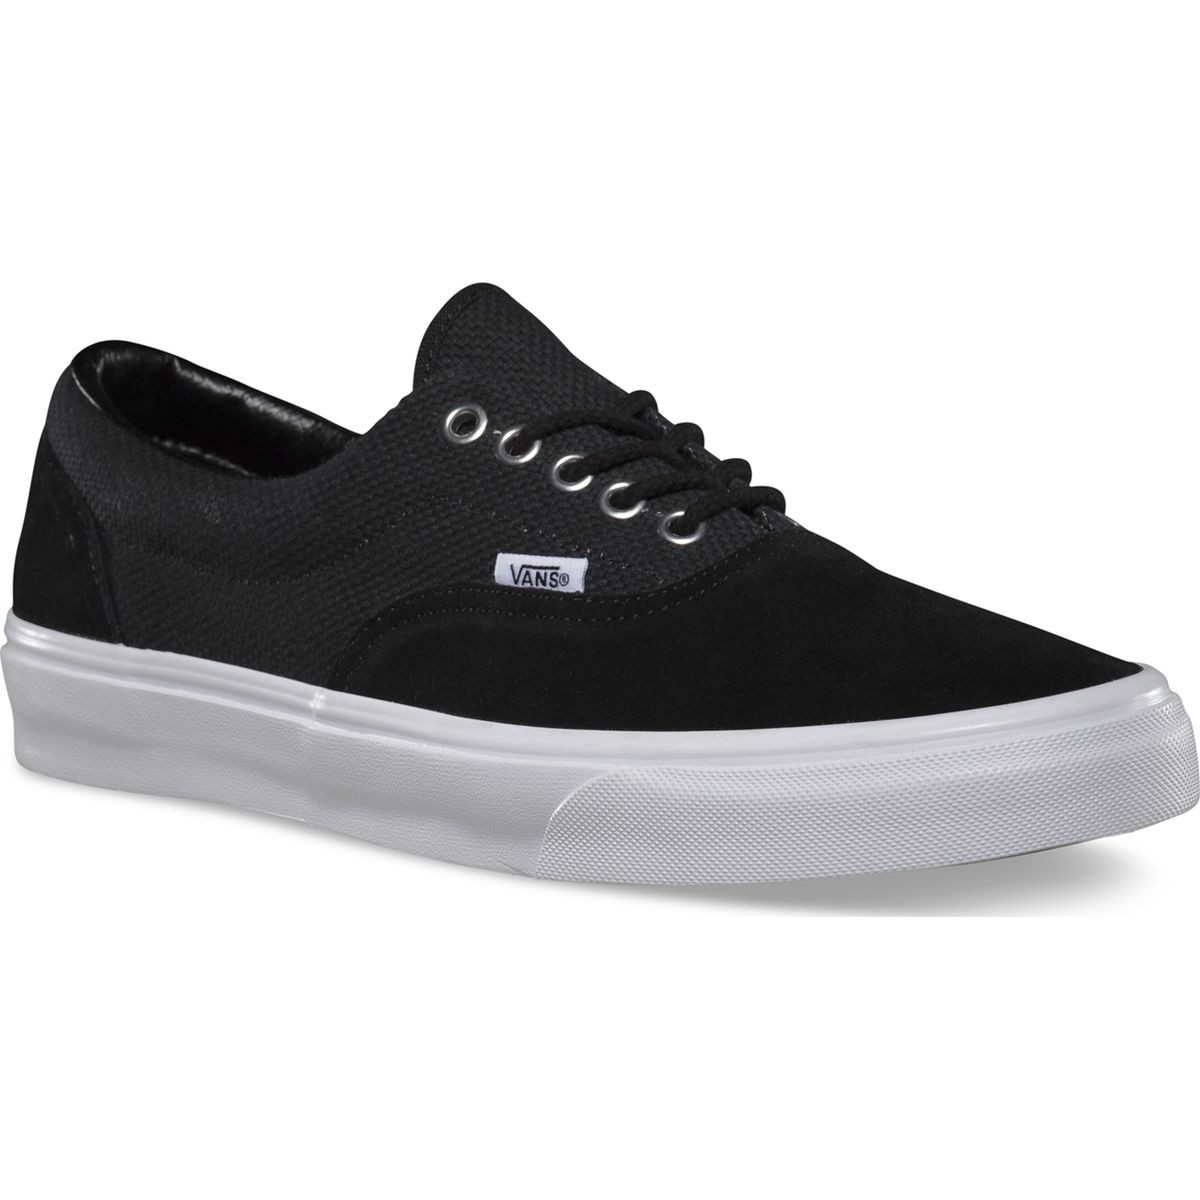 Vans Era Hemp Shoes - Black / True White